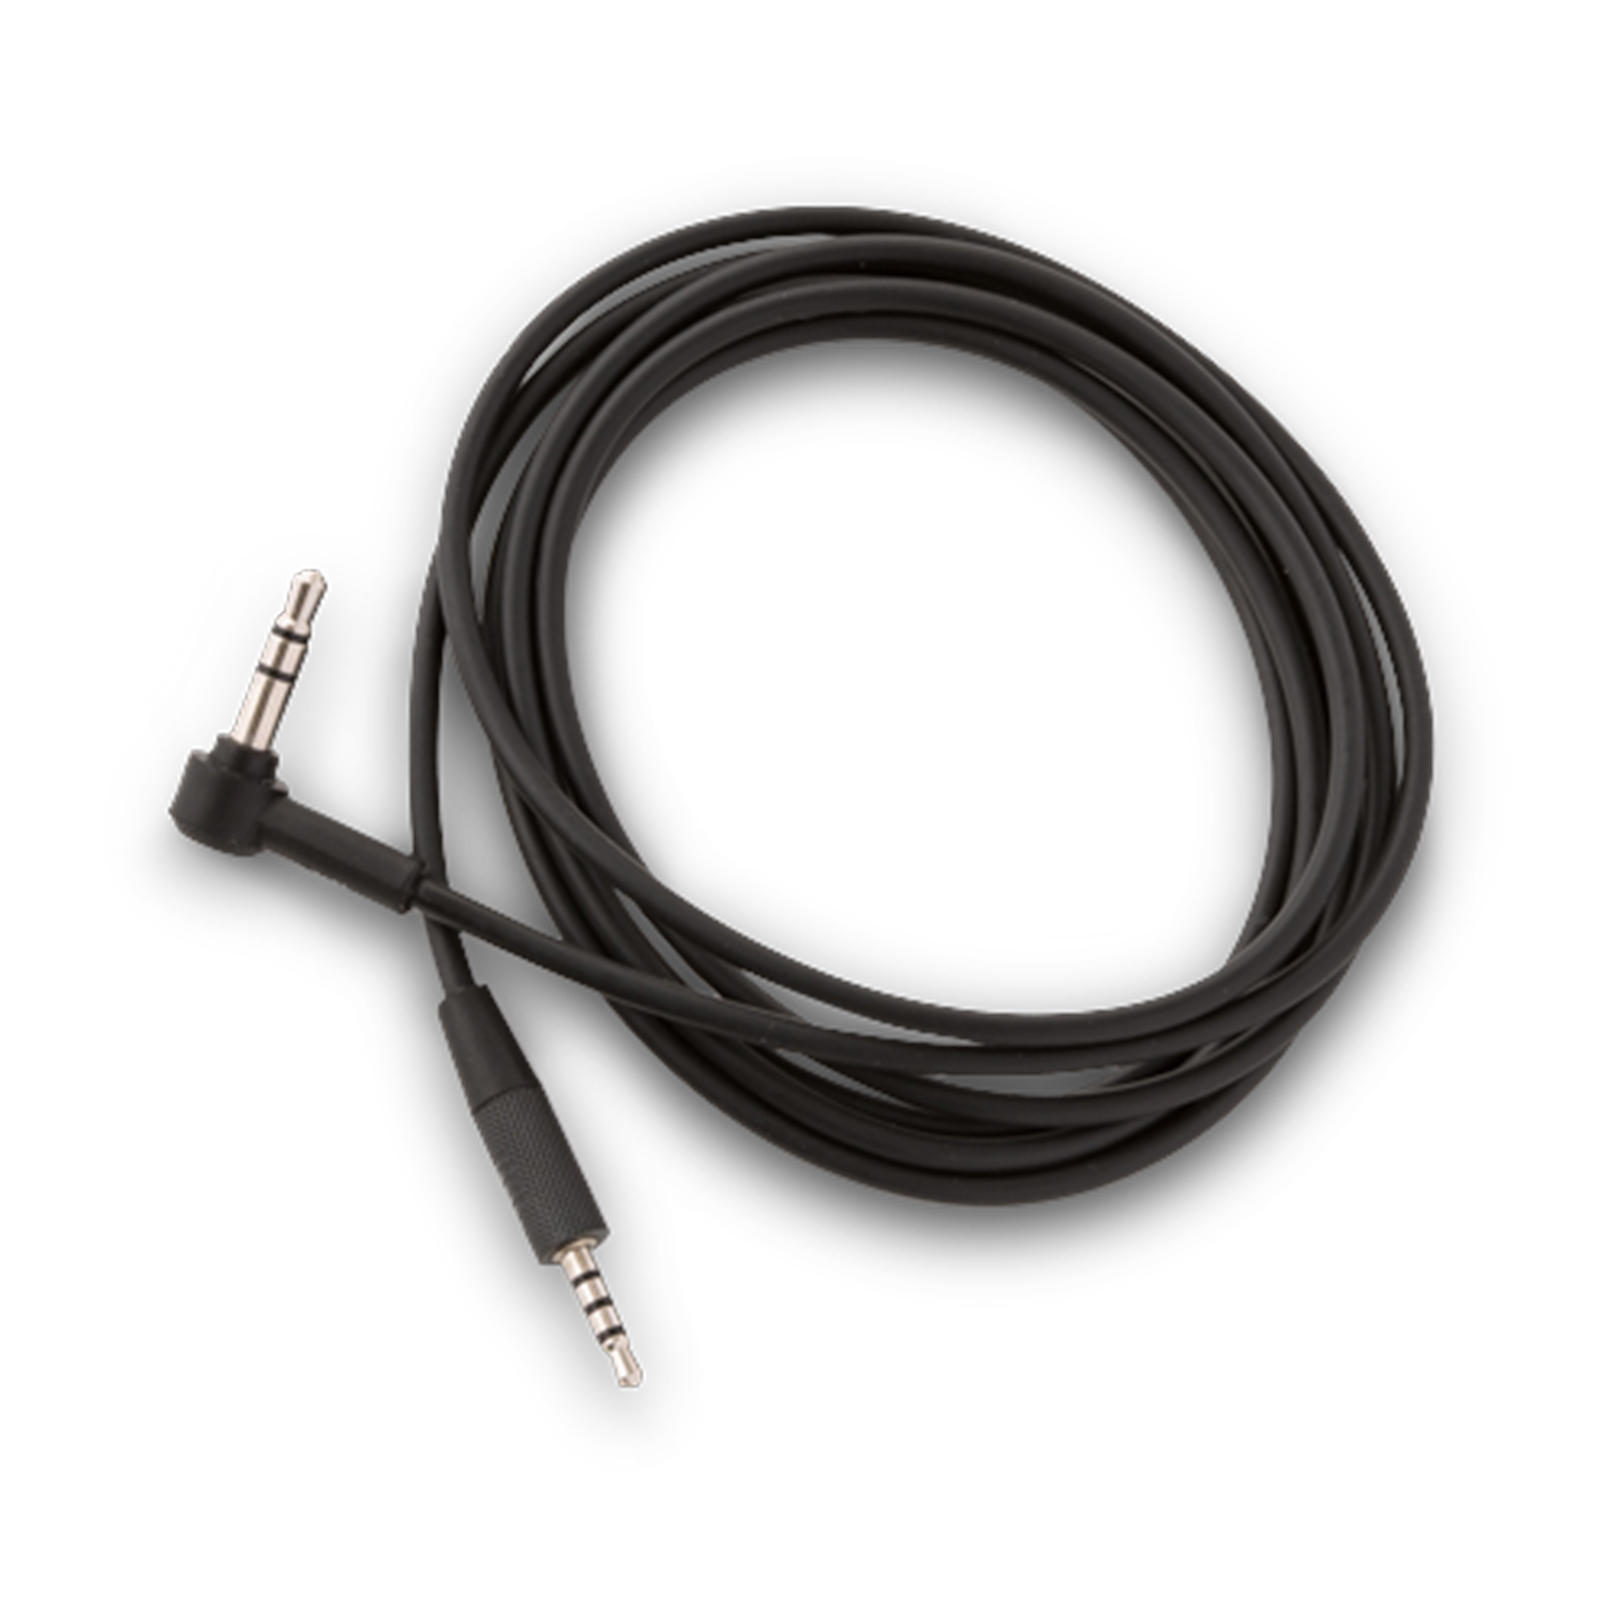 JBL Audio cable for E50BT - Black - Audio cable - Hero